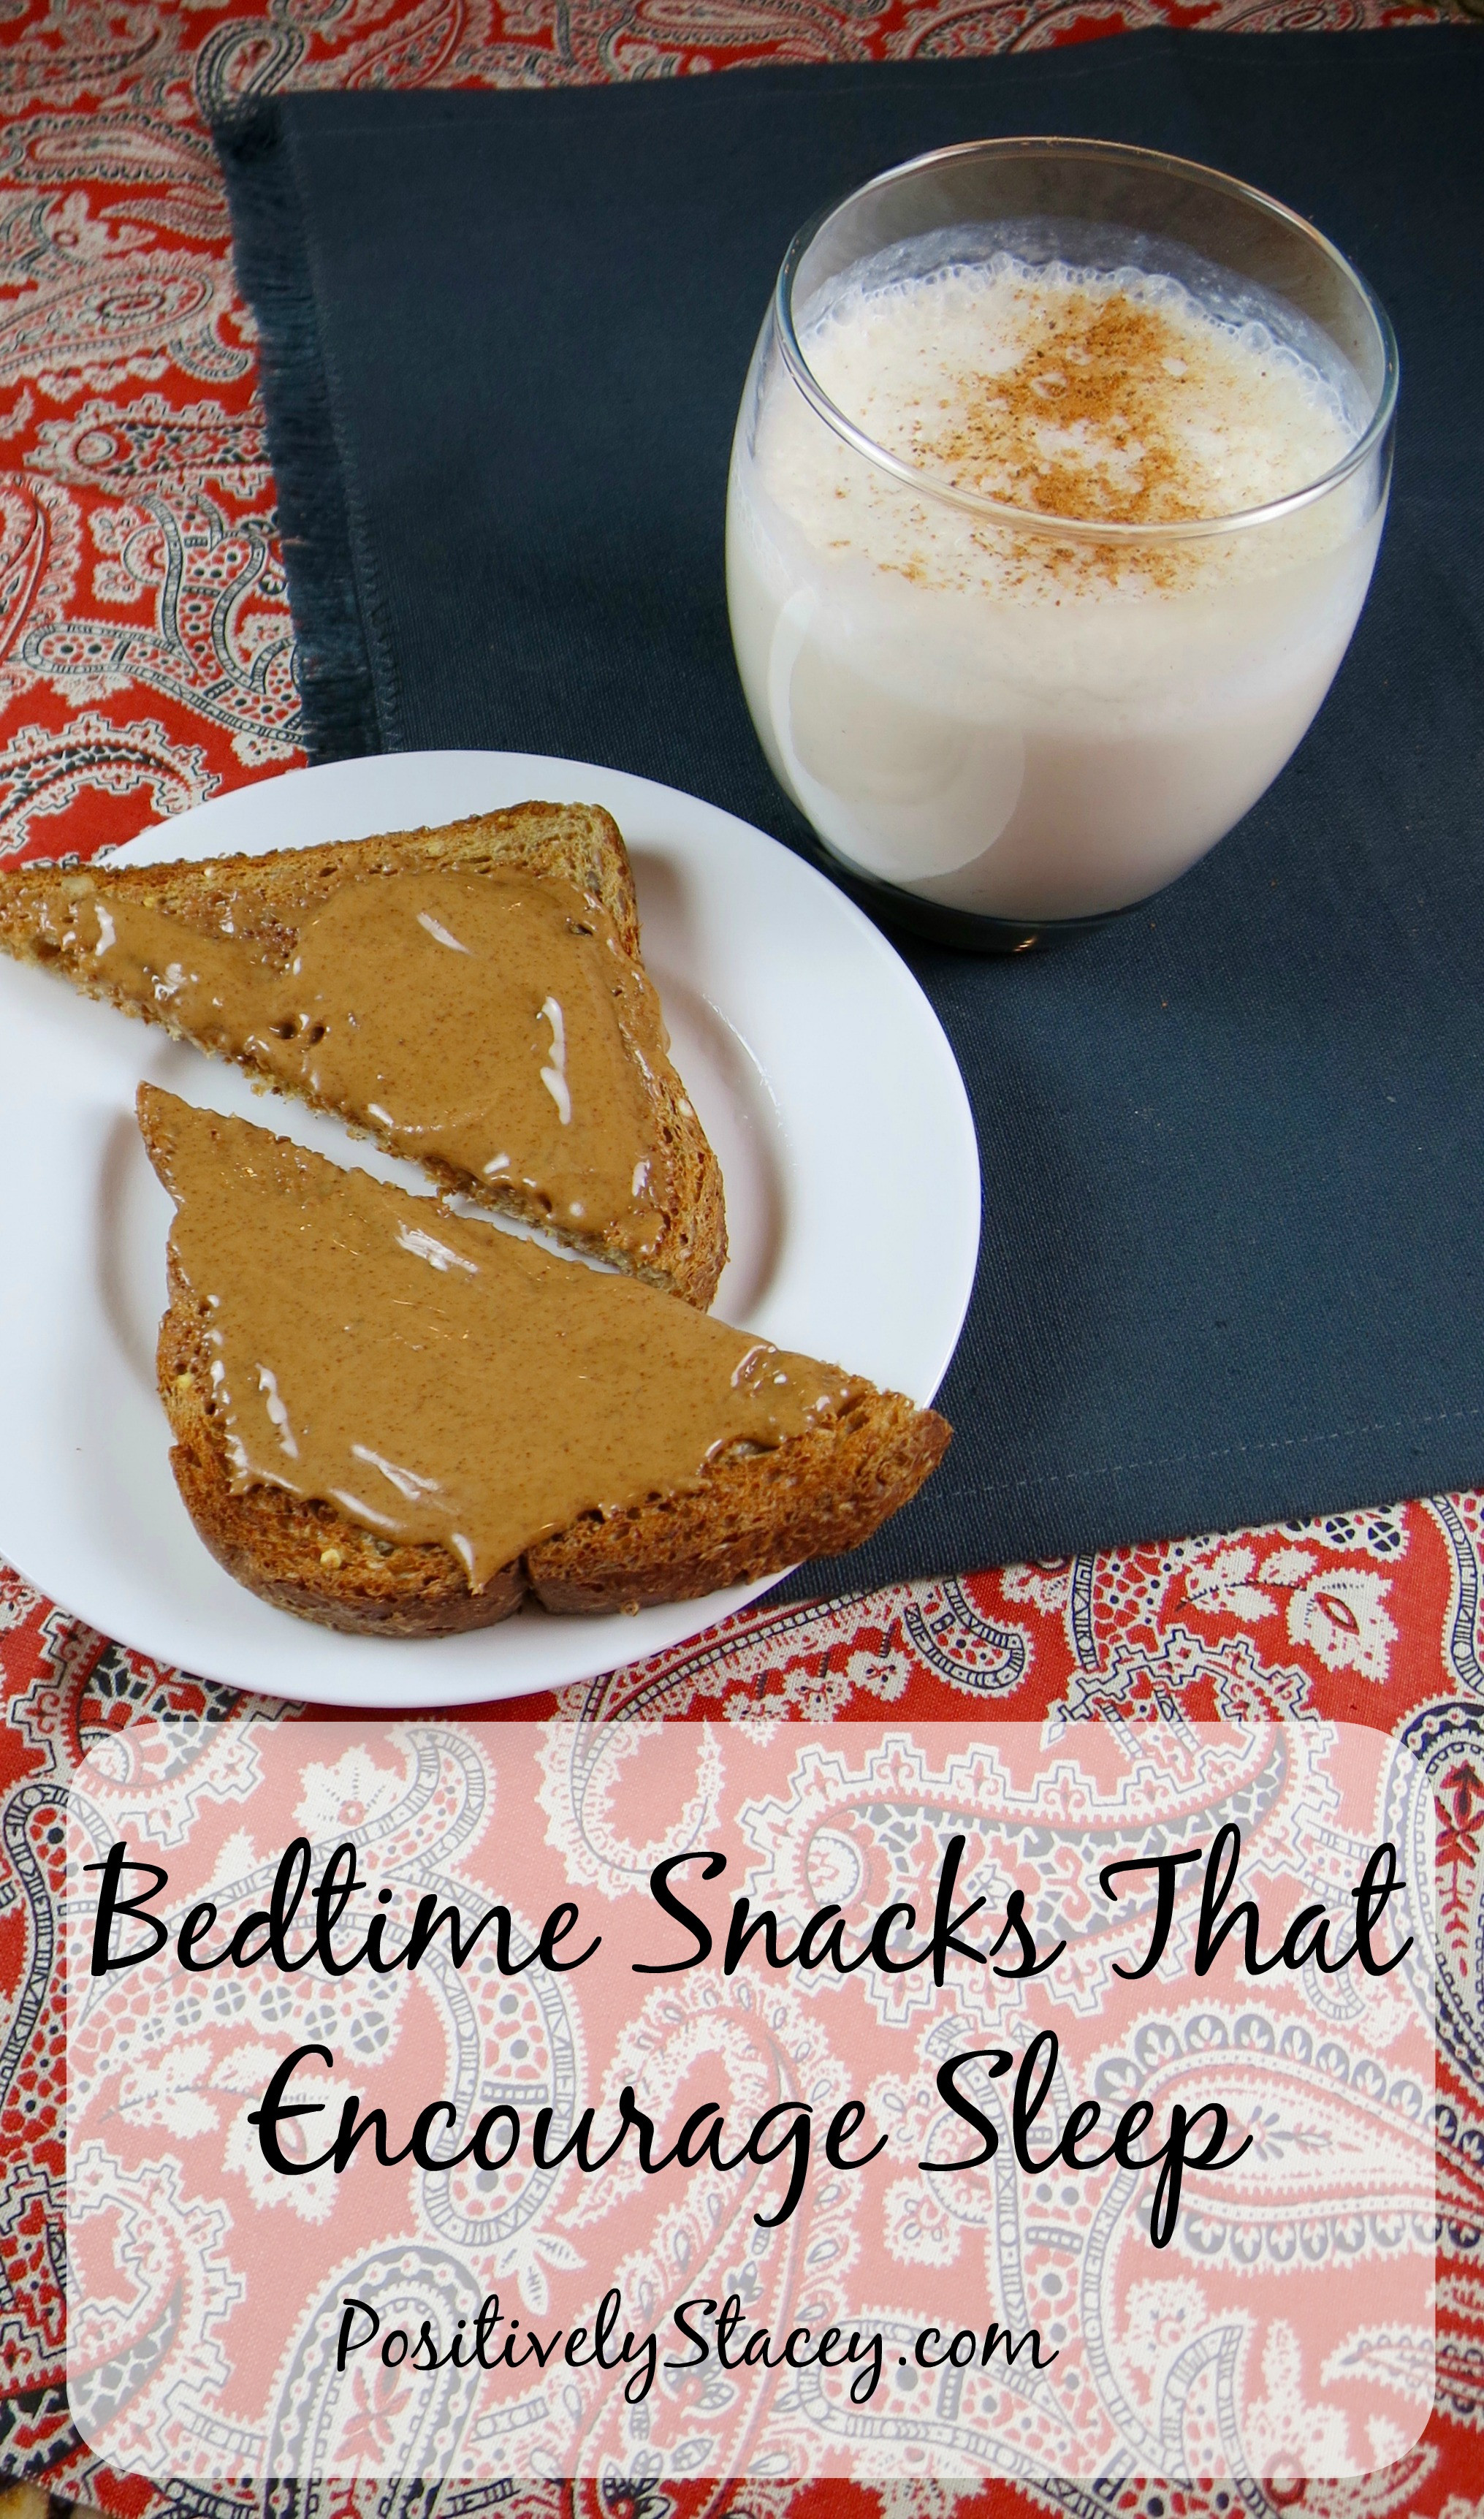 Healthy Bedtime Snacks For Sleep  Bedtime Snacks that Encourage Sleep Positively Stacey